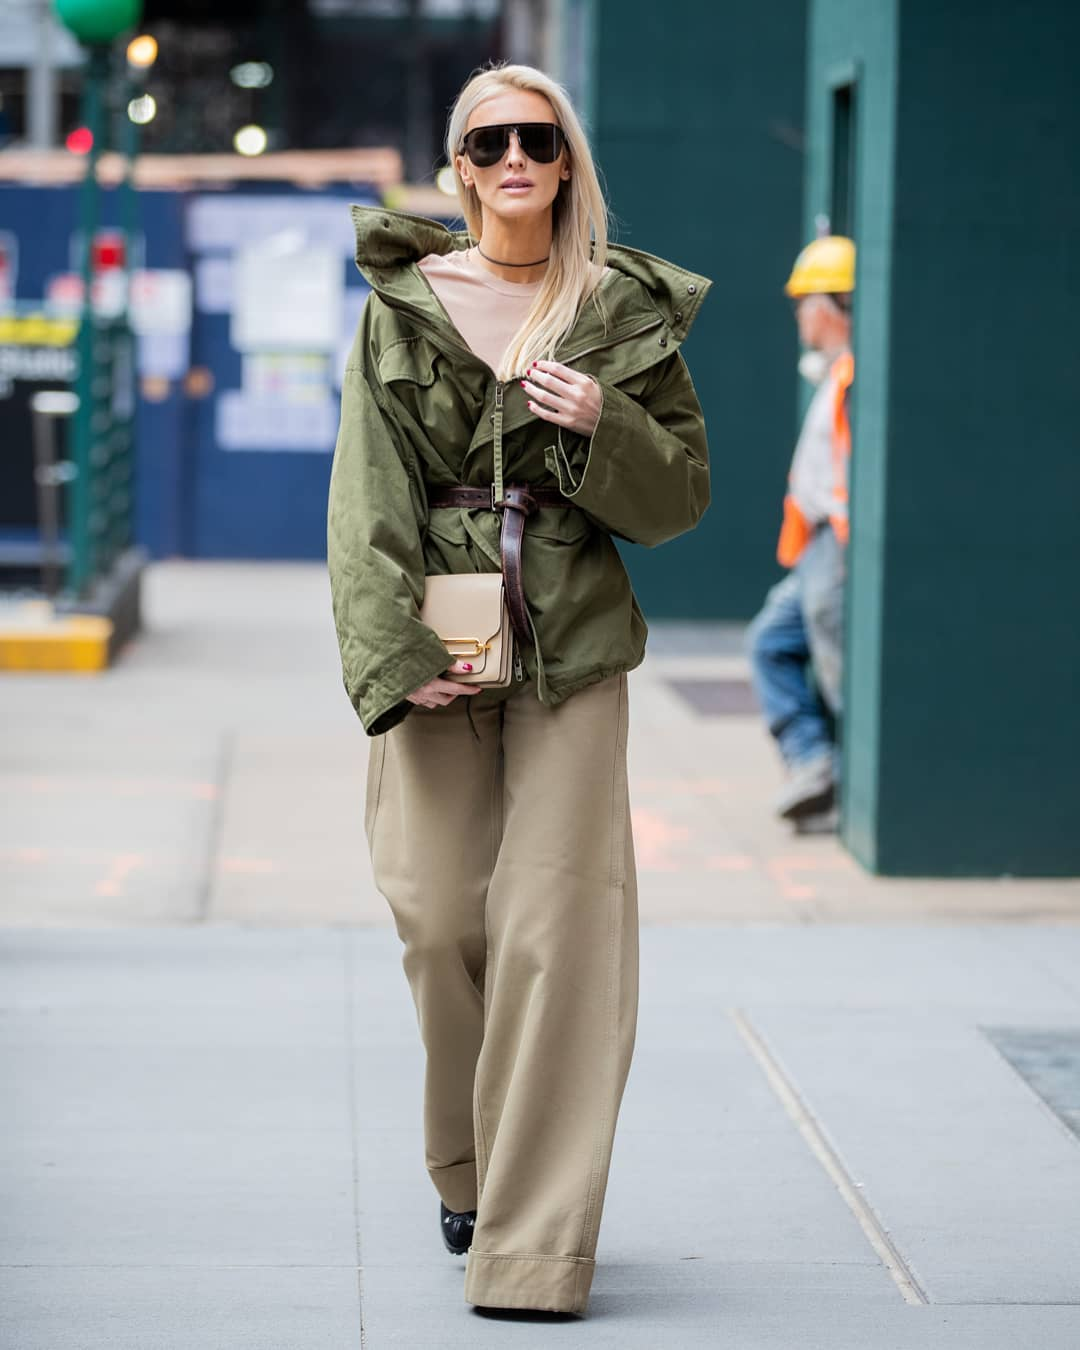 Military-Inspired Jackets are a Key Trend for Spring